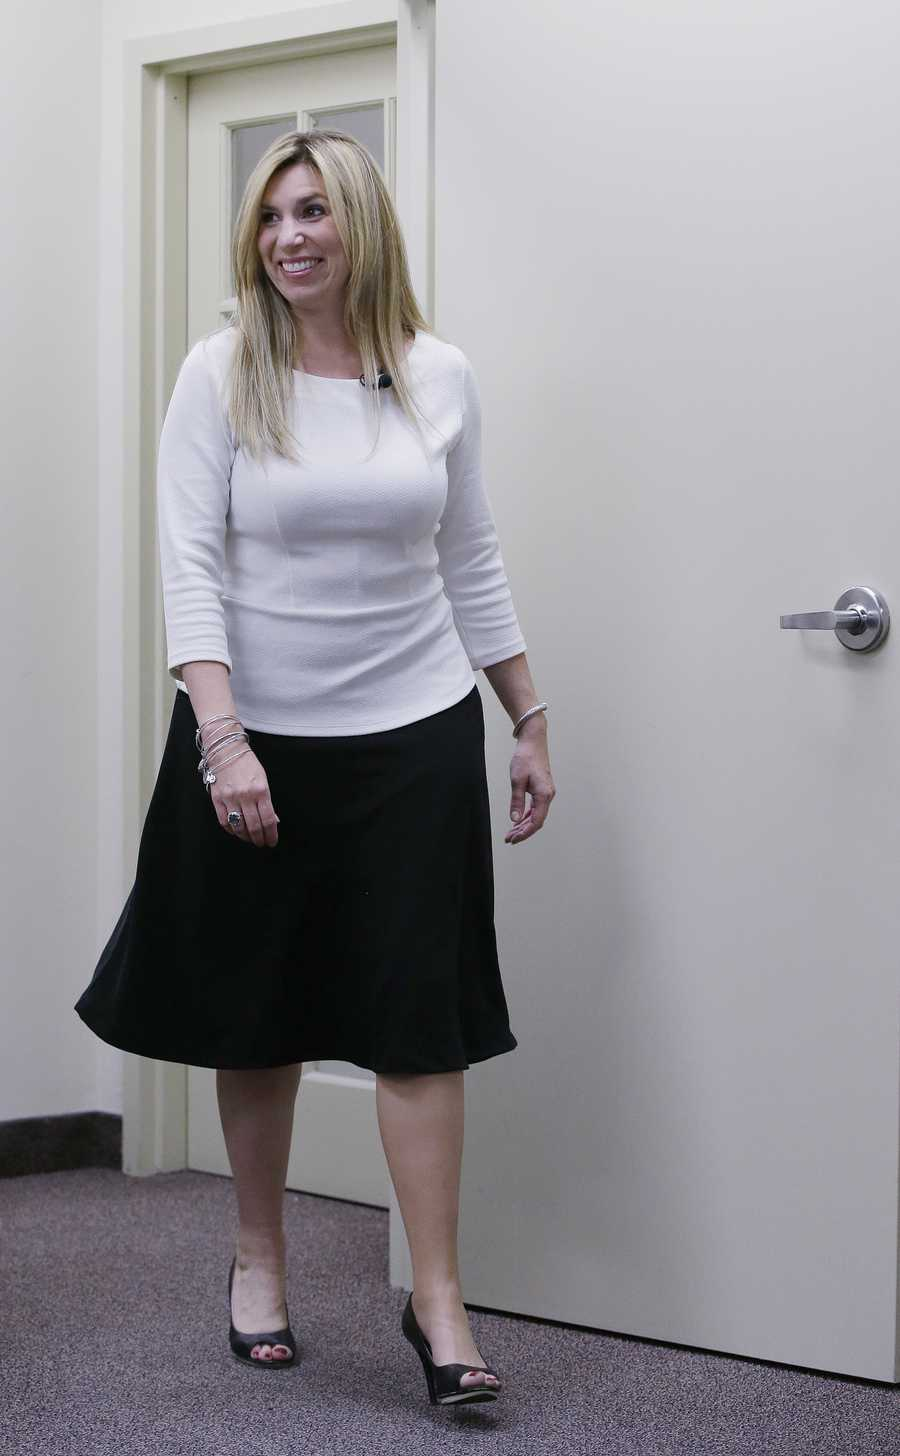 """Sporting her 4-inch Nine West high heels Heather Abbott of Newport, RI., shows off her new """"high-definition"""" prosthetic leg which allows her to also wear heels and skirts in Warwick, R.I.,, Nov. 7, 2013. Abbott lost her left leg in the April 15, 2013 Boston Marathon bombings."""